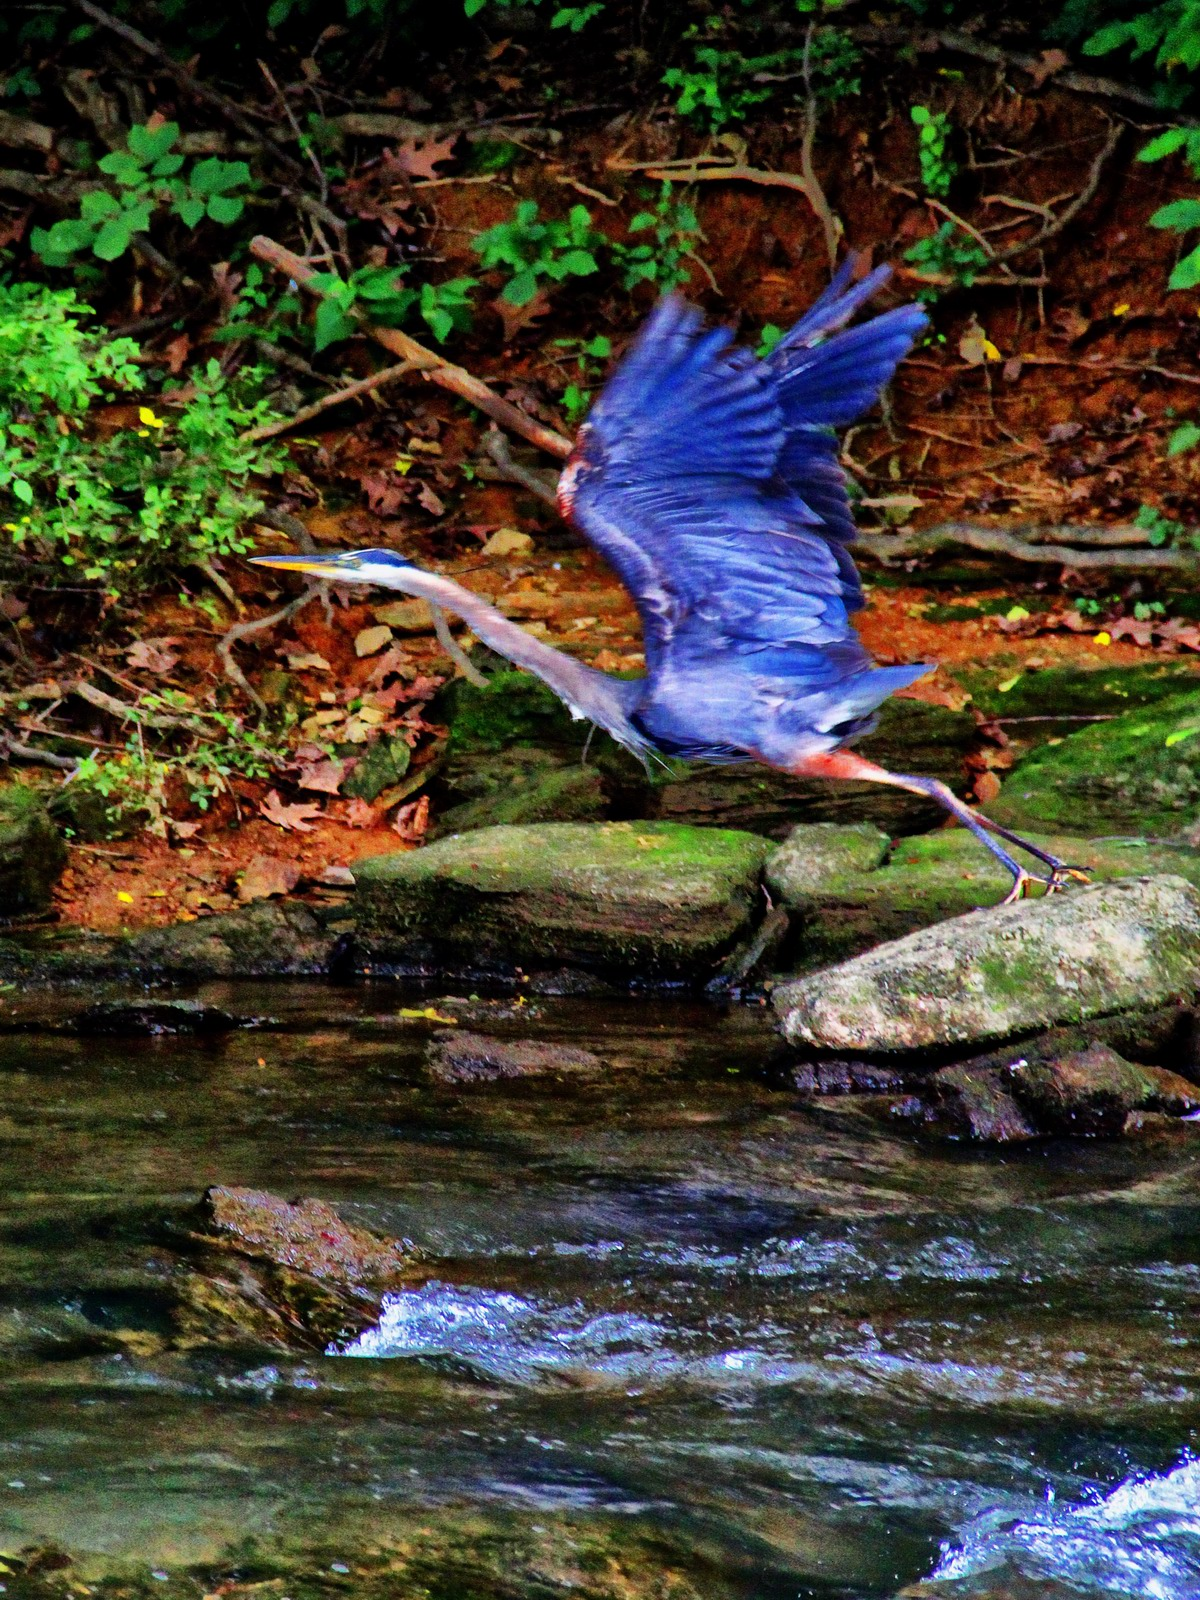 pennsylvania, allentown, great blue heron, feet, ground, mind, clouds,, photo